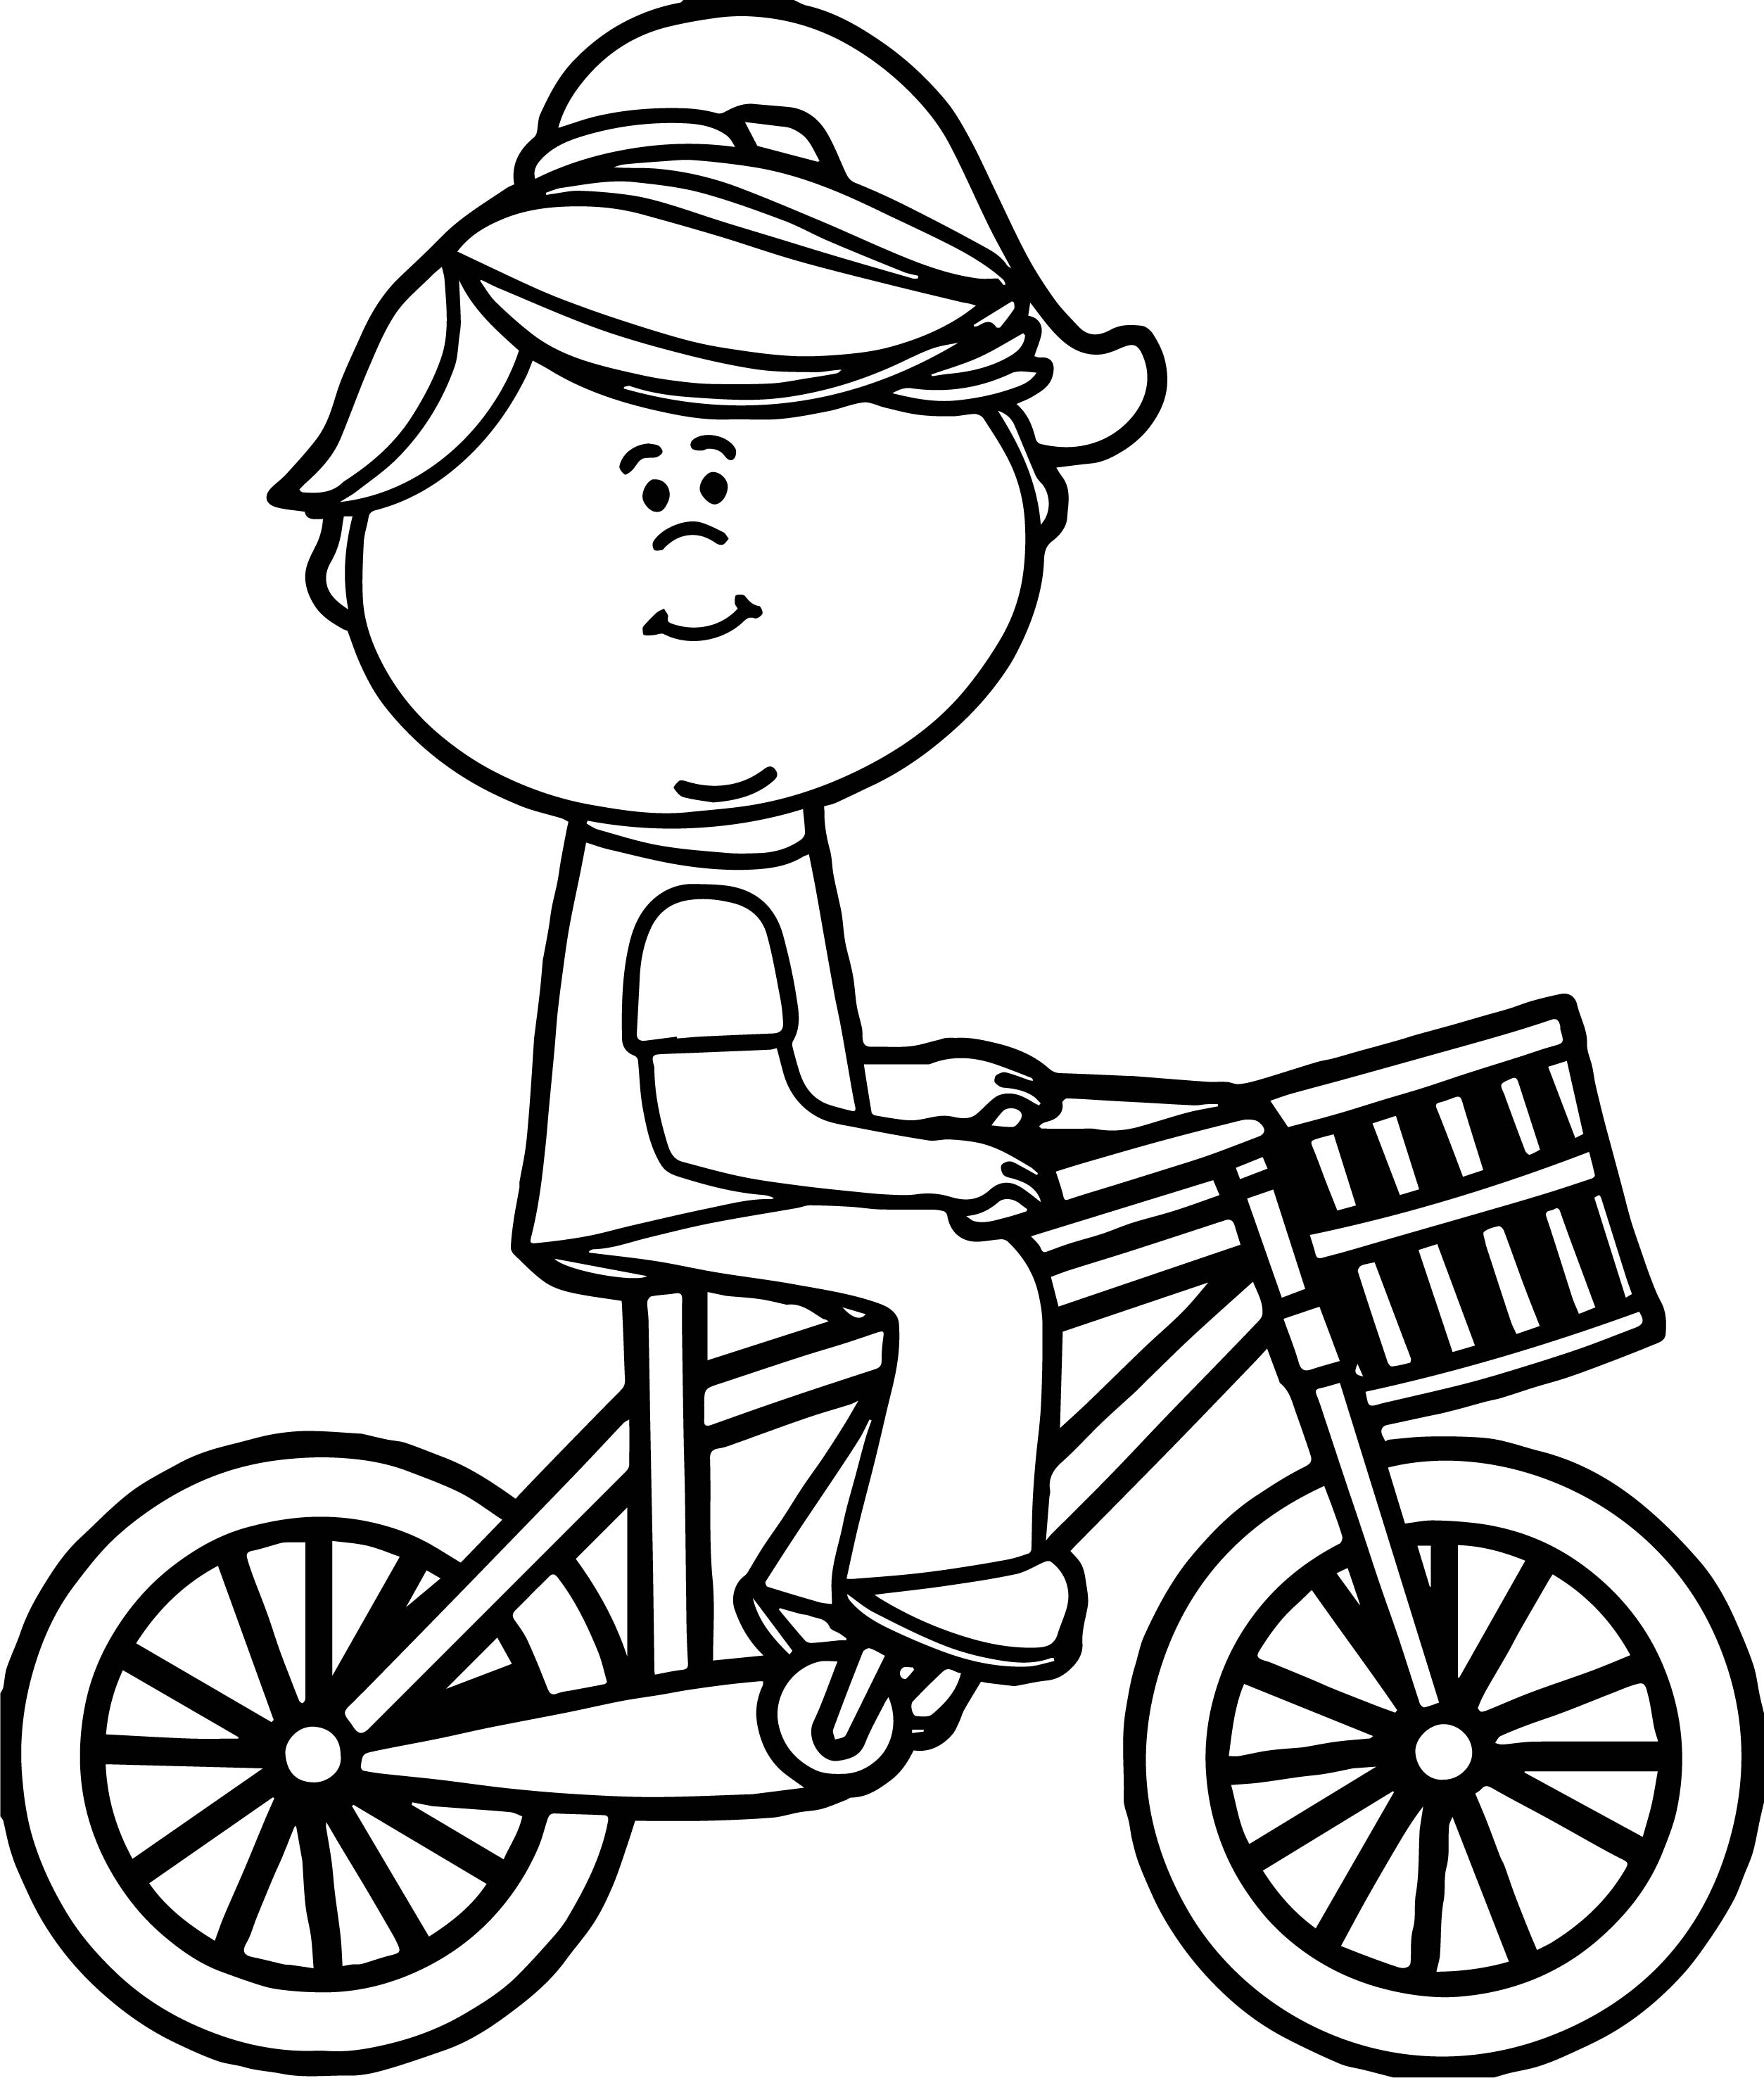 coloring pages bikes bicycle coloring pages to download and print for free pages coloring bikes